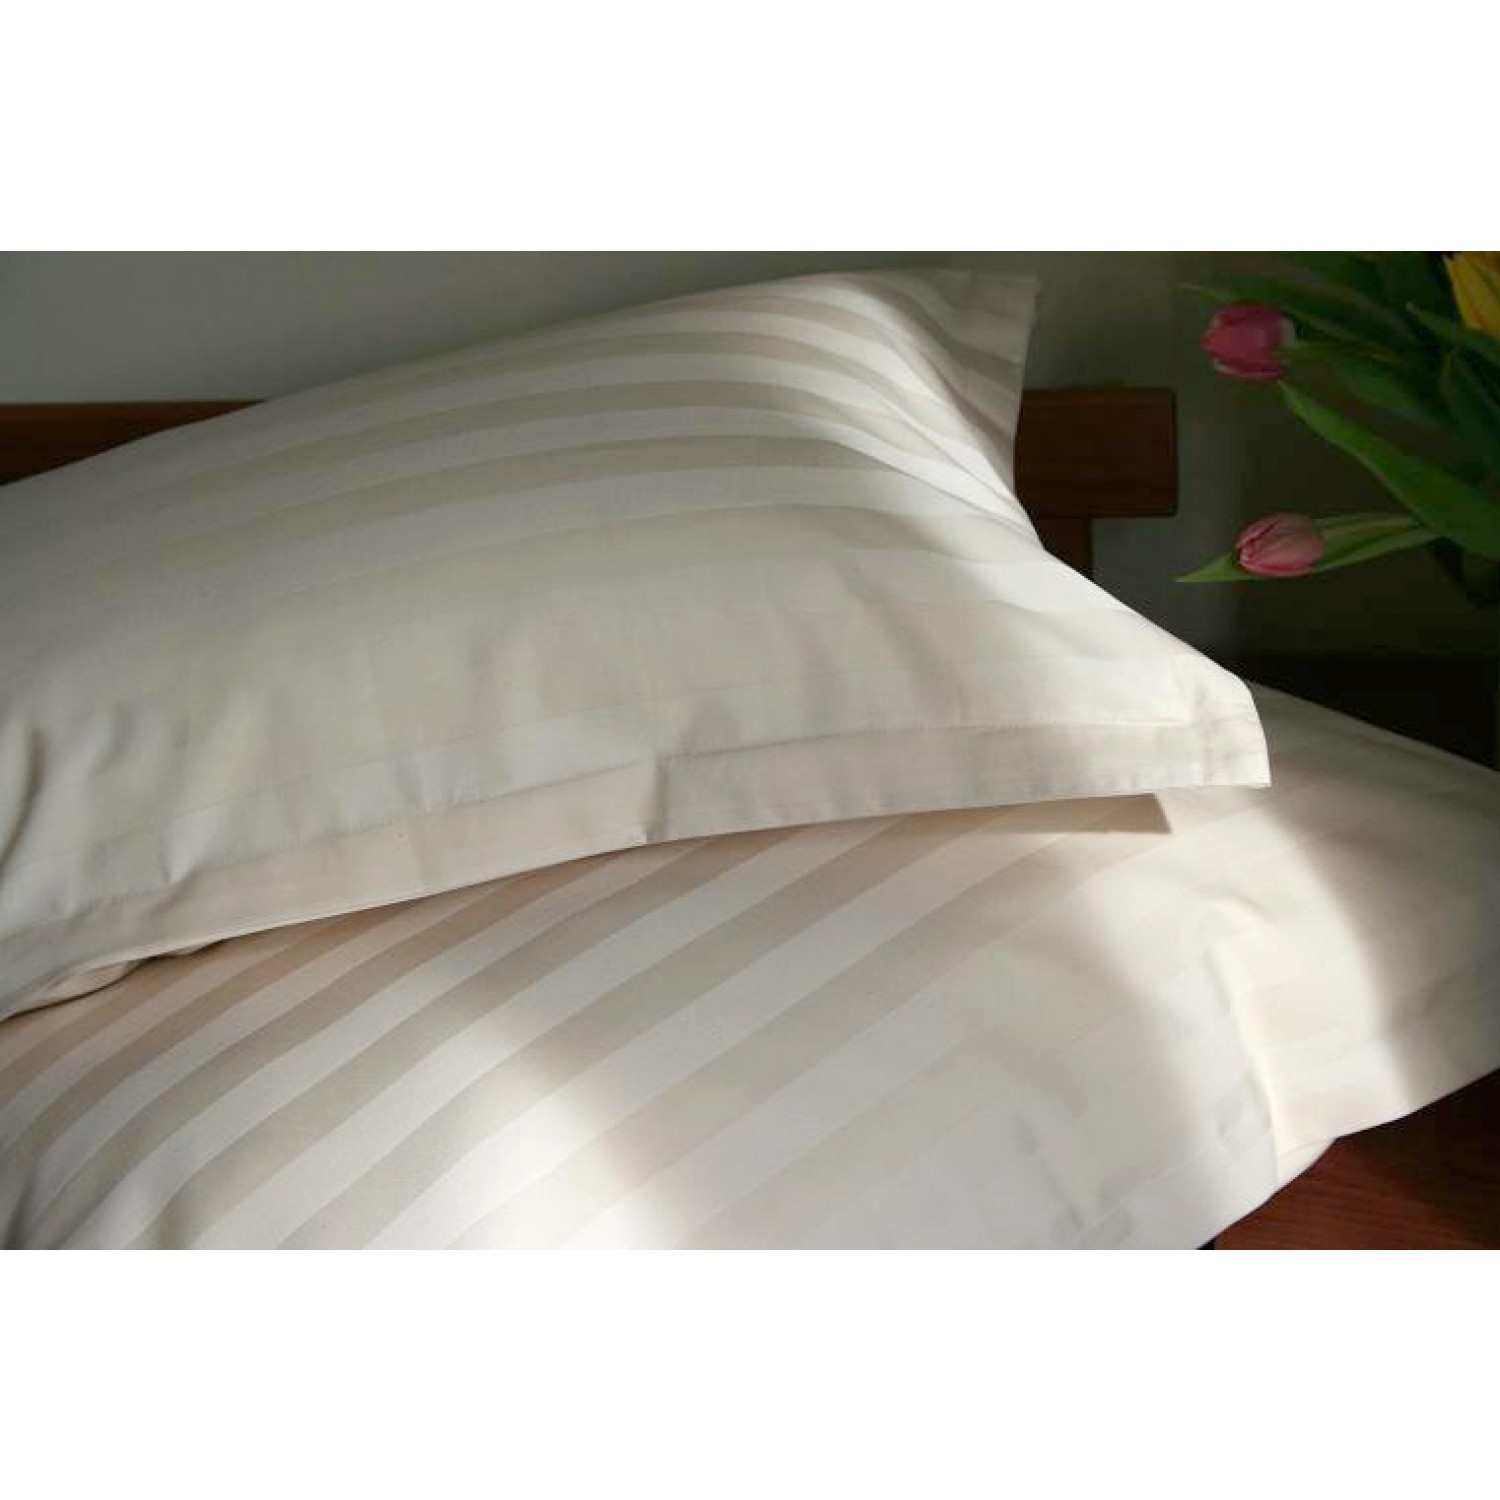 Pillowcase Classic Stripes made of organic cotton | iaio